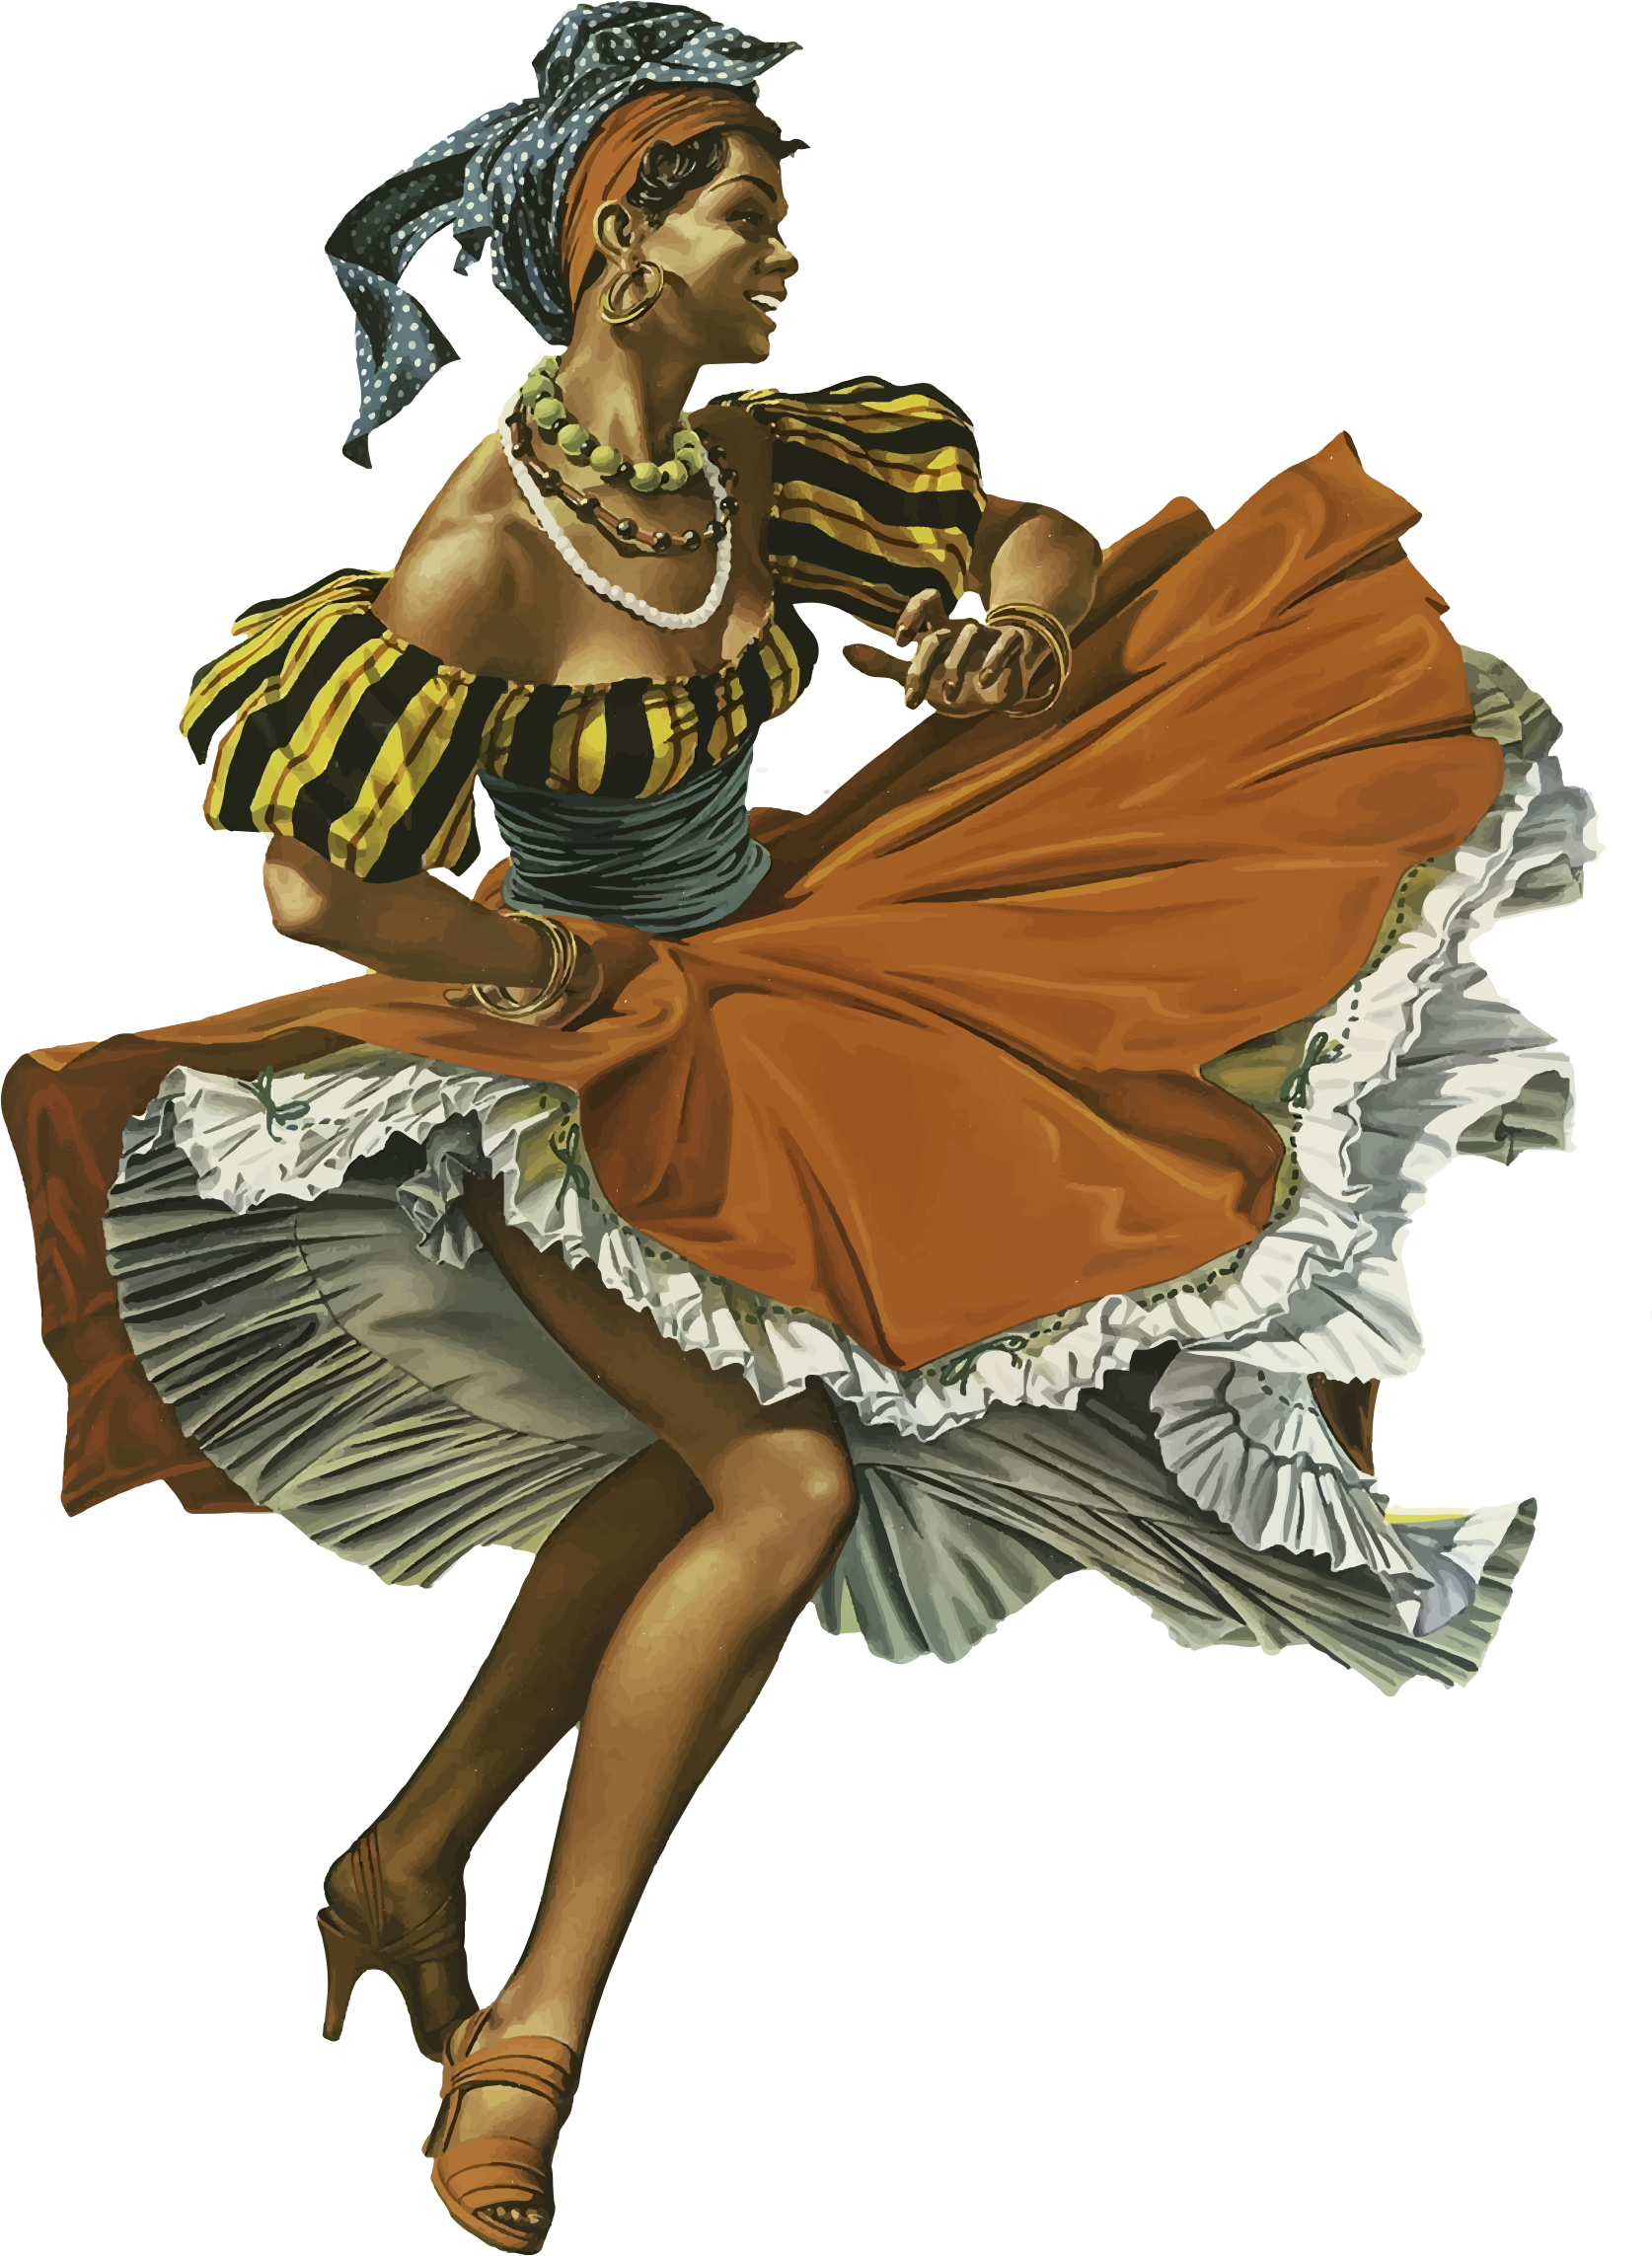 Vintage Caribbean Dancing Woman by GDJ